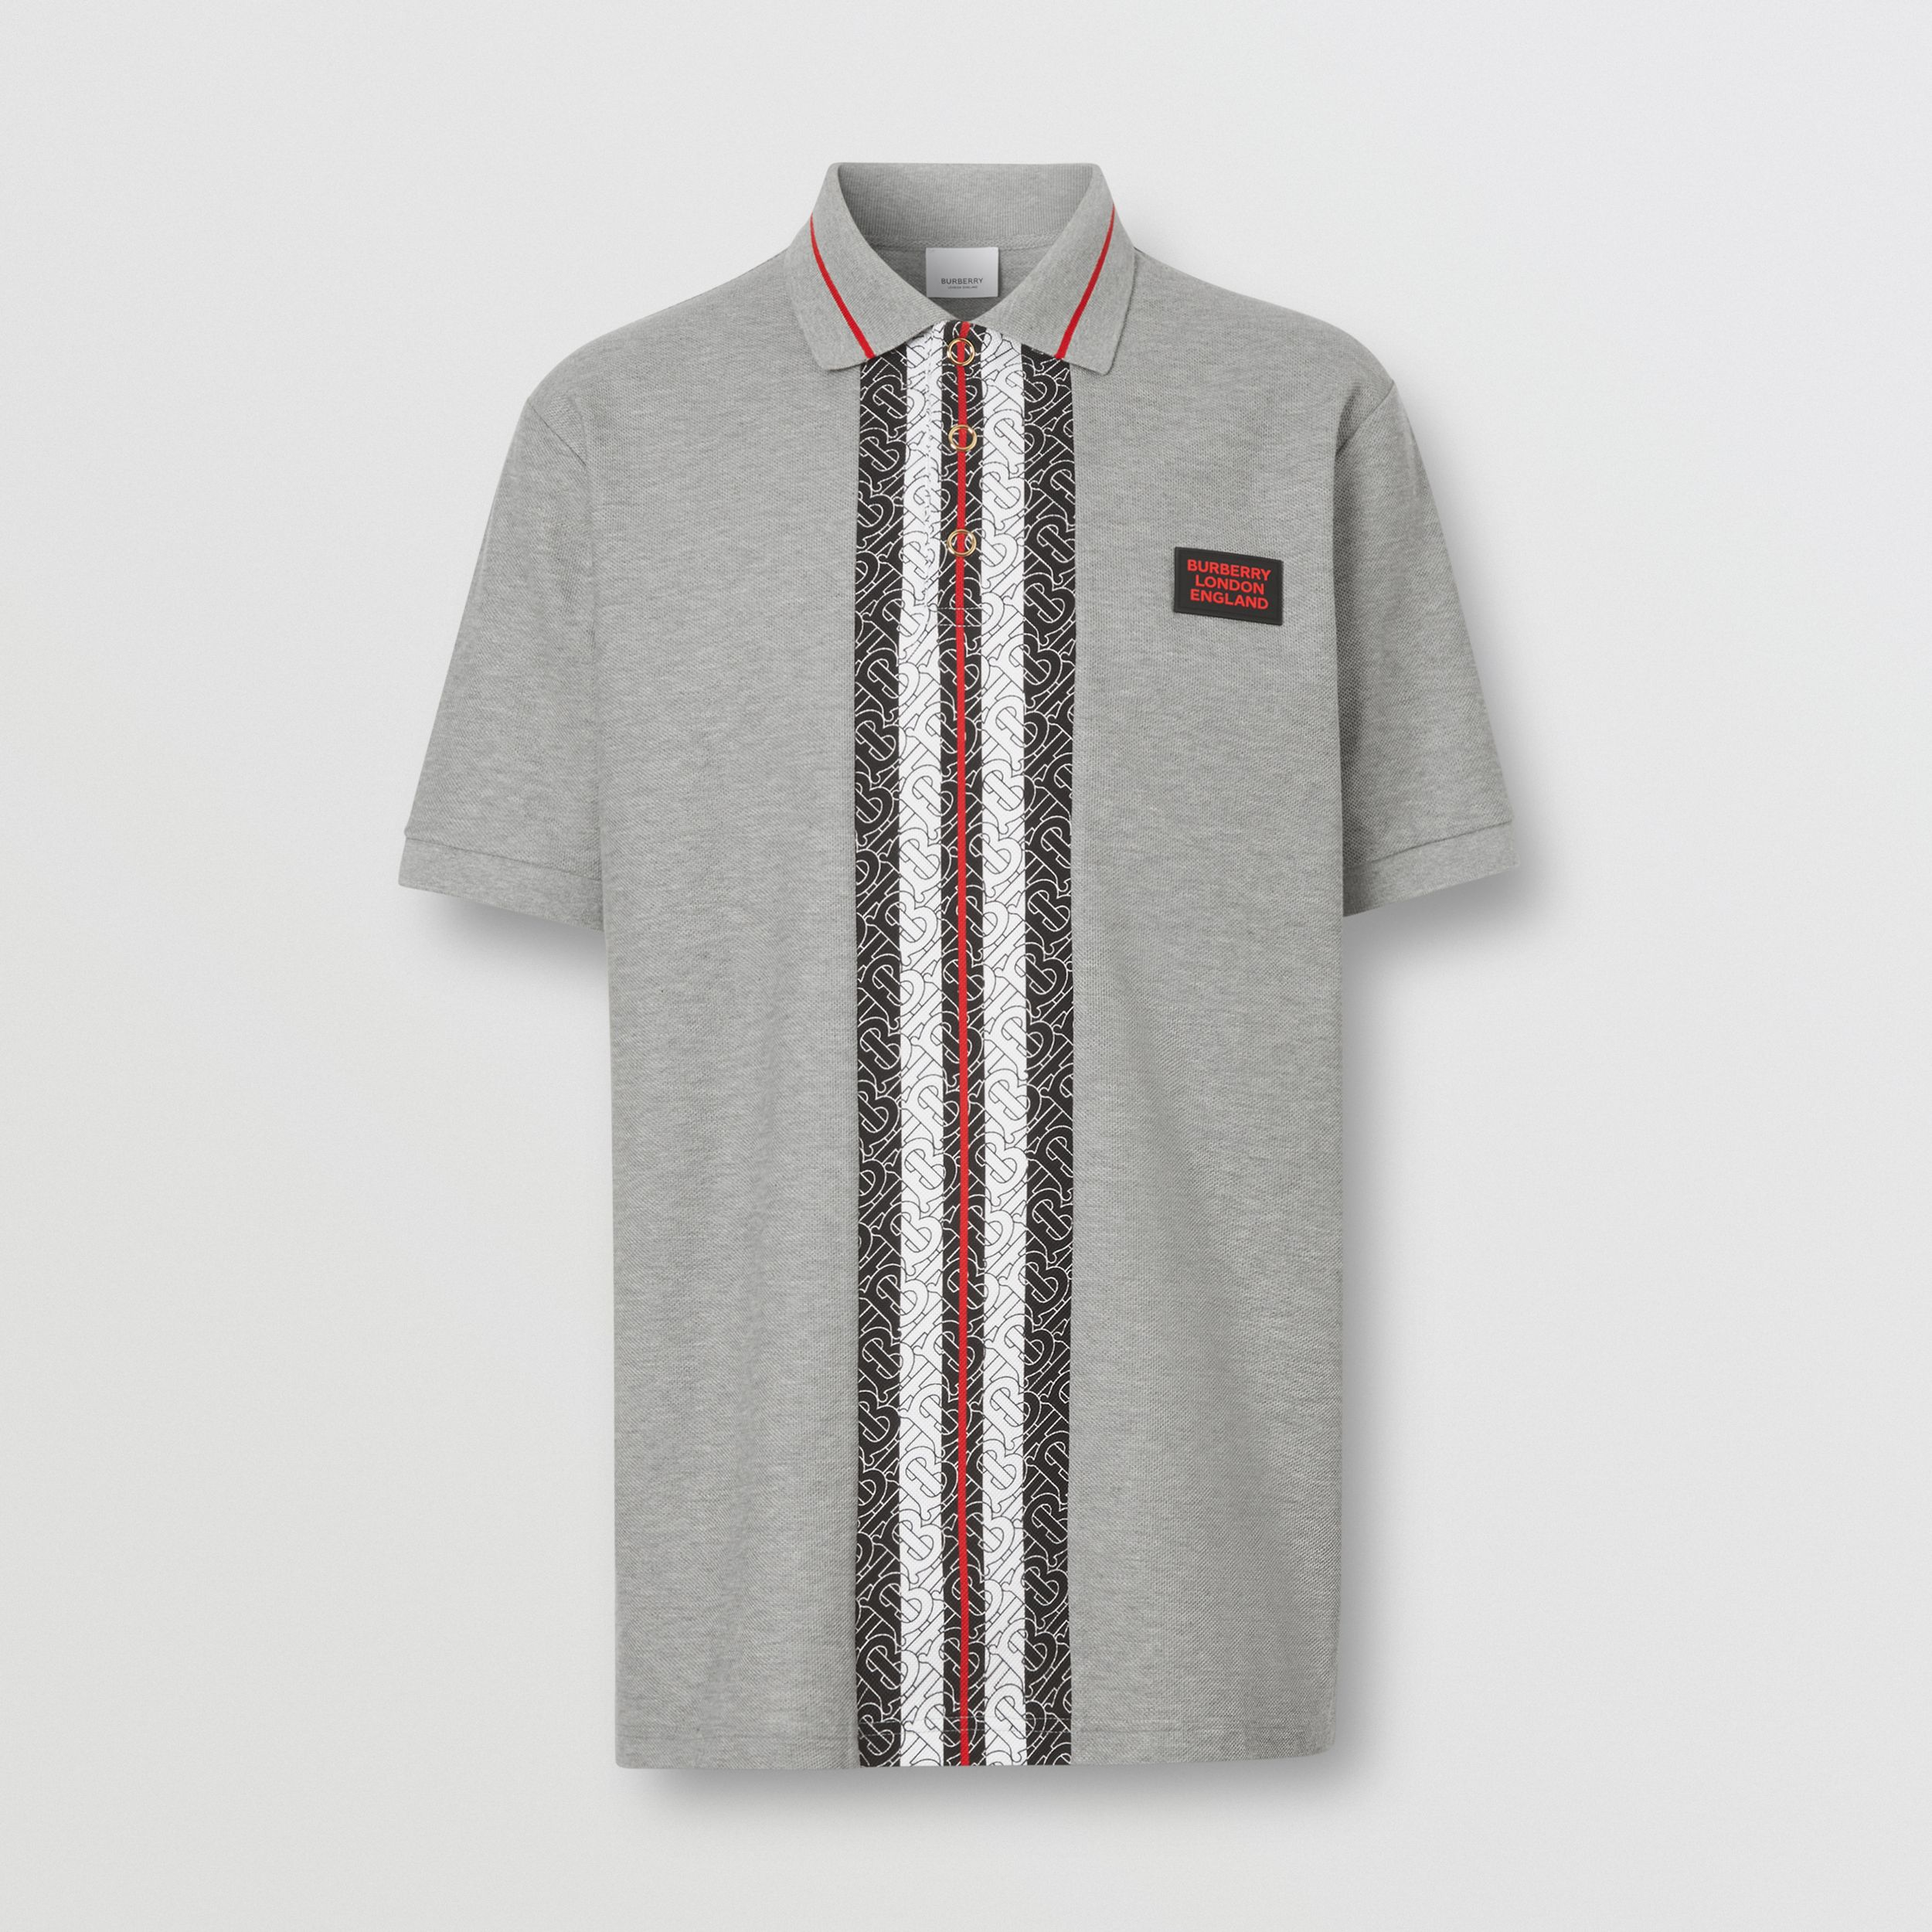 Monogram Stripe Print Cotton Piqué Polo Shirt in Pale Grey Melange - Men | Burberry - 4